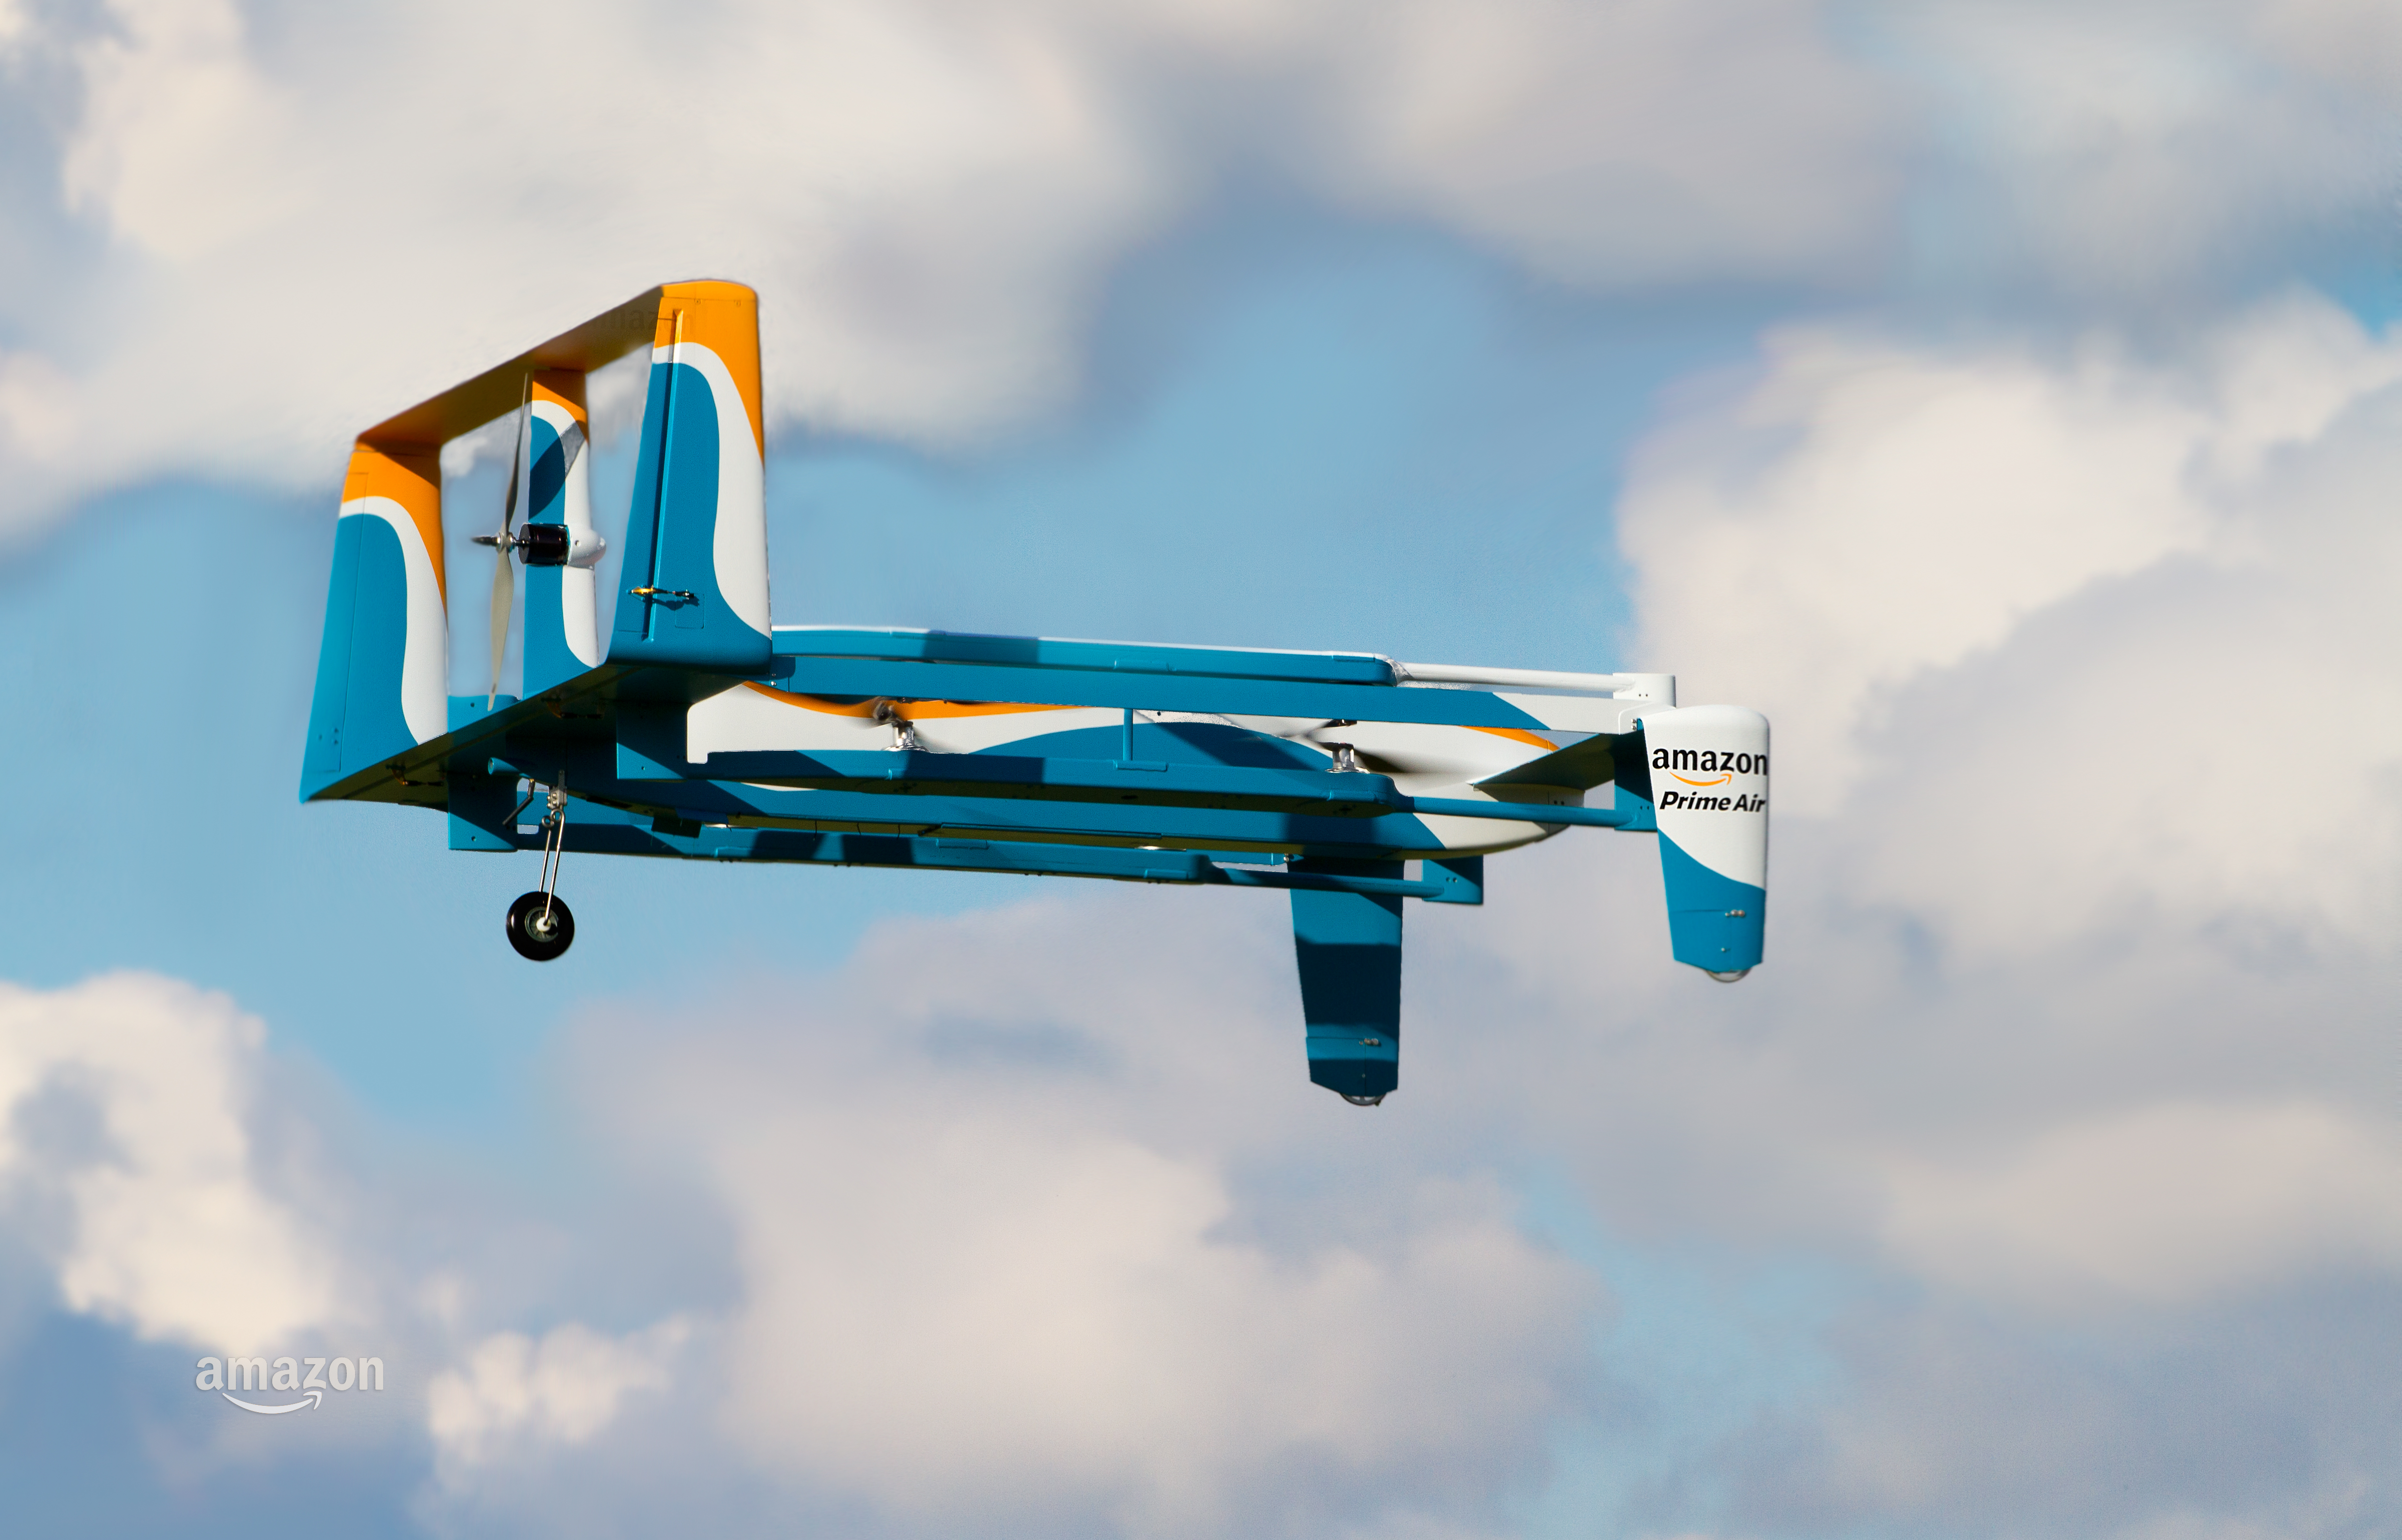 Amazon Drone Used for Yet Another Smart PR Move